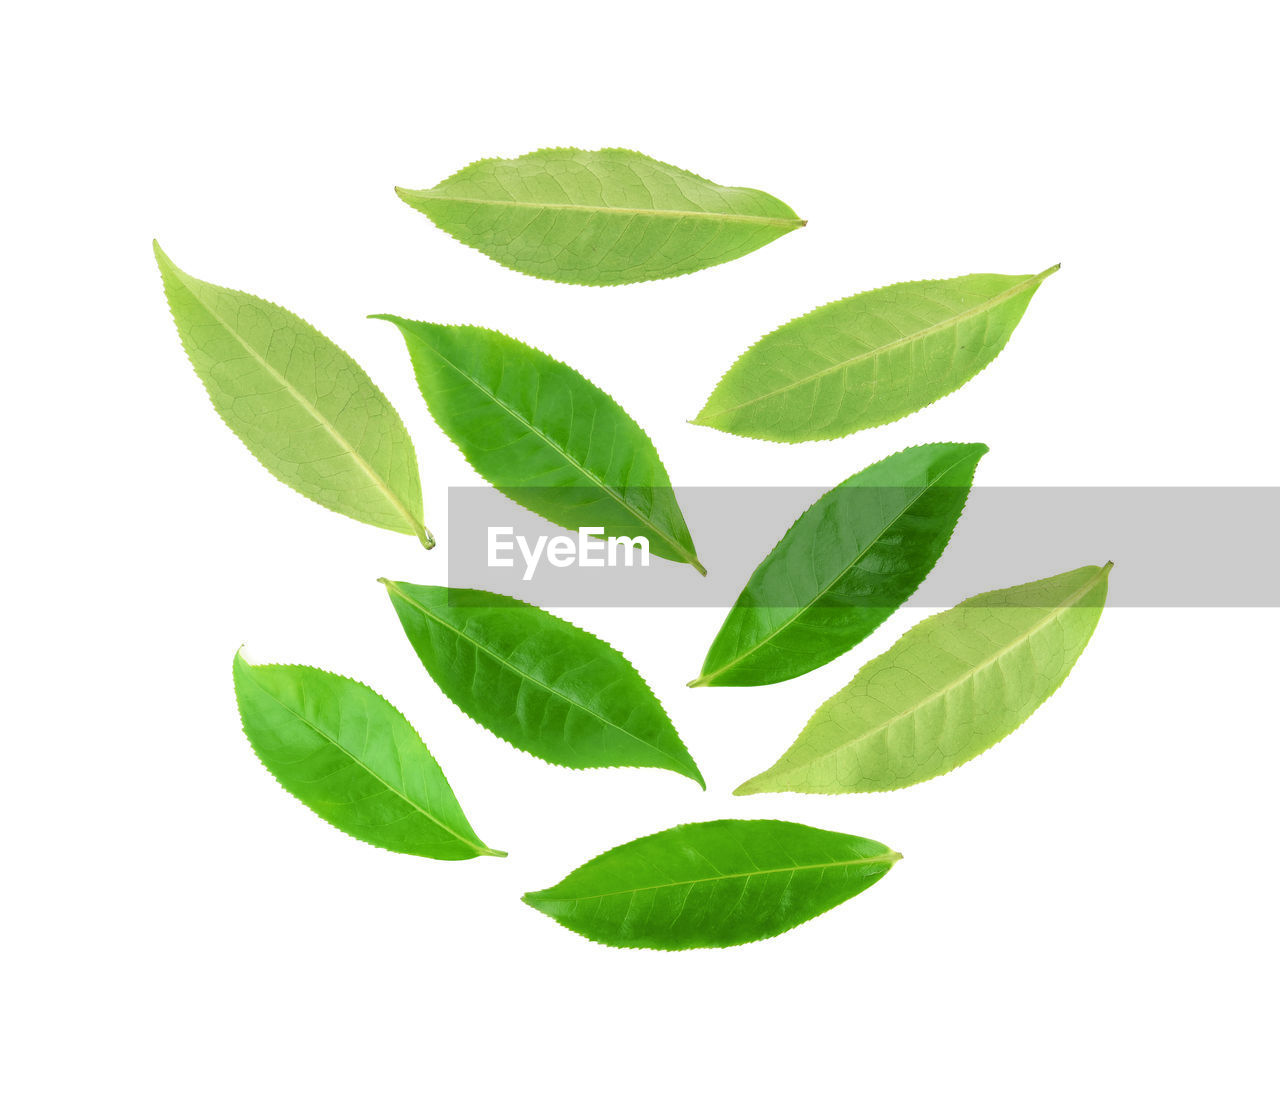 leaf, plant part, green color, white background, no people, nature, close-up, studio shot, plant, indoors, pattern, directly above, cut out, food and drink, leaf vein, herb, leaves, freshness, tea leaves, digital composite